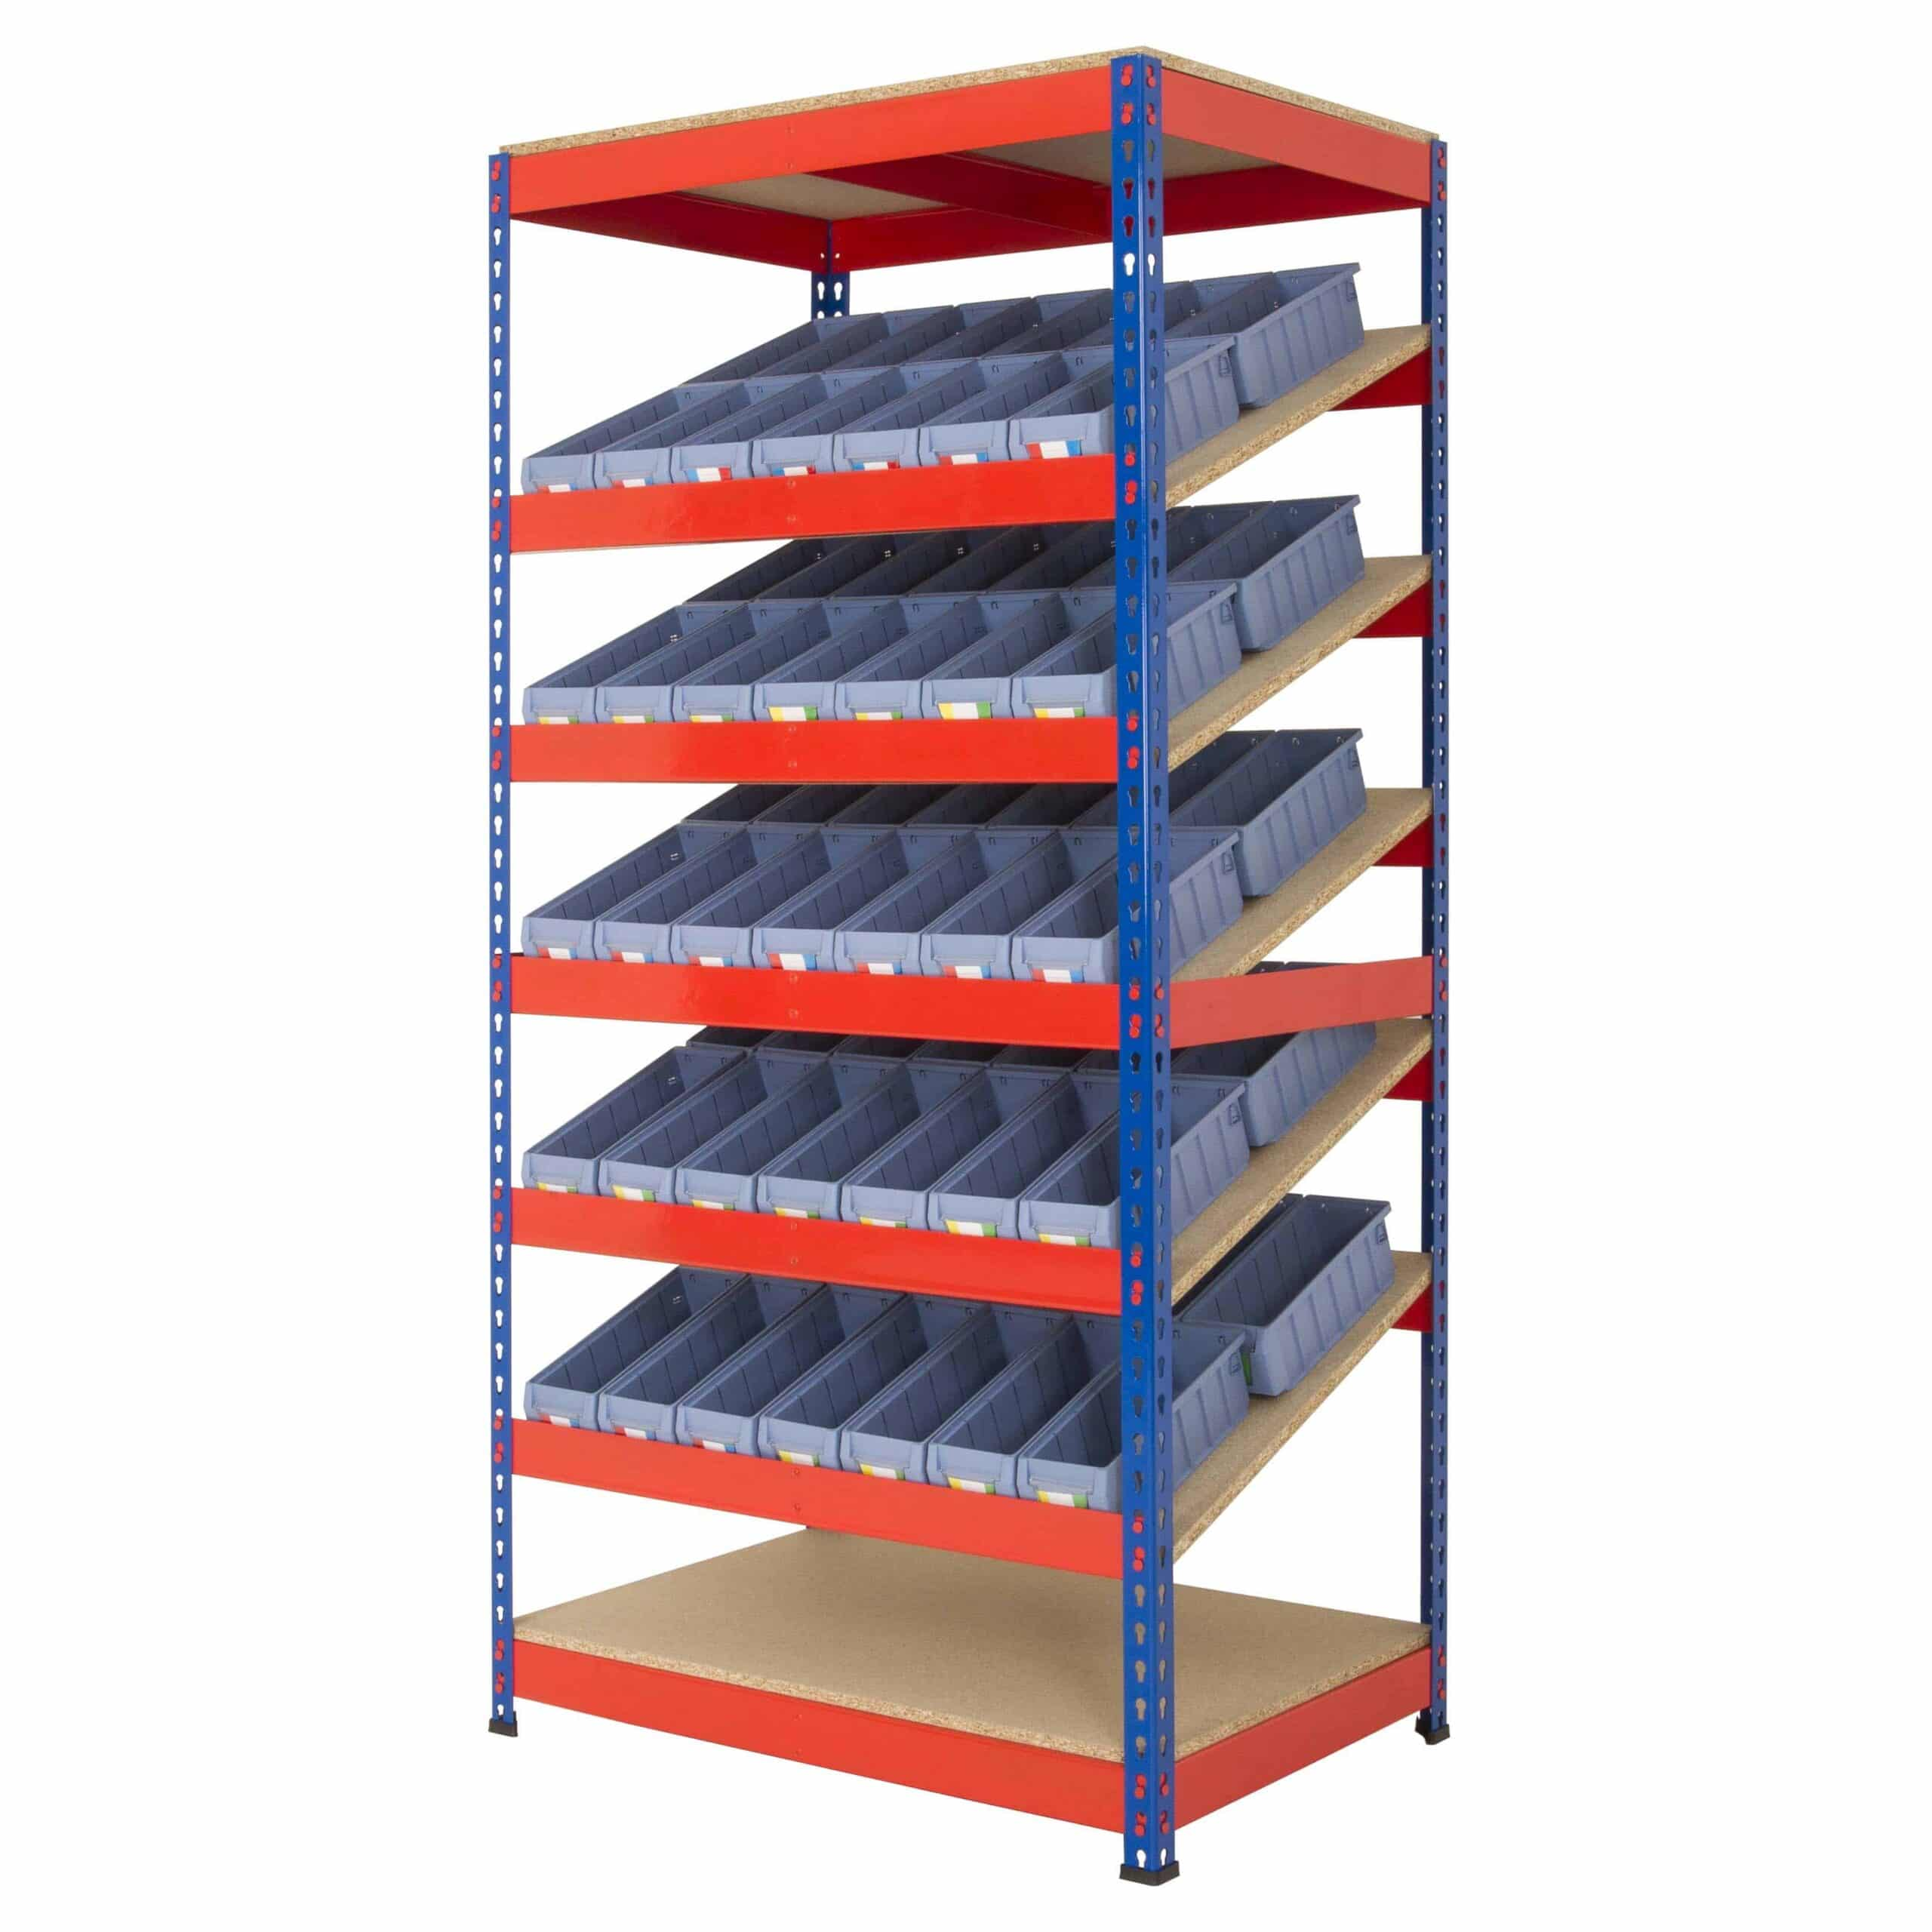 Rivet Racking Kanban Shelf Tray Shelving